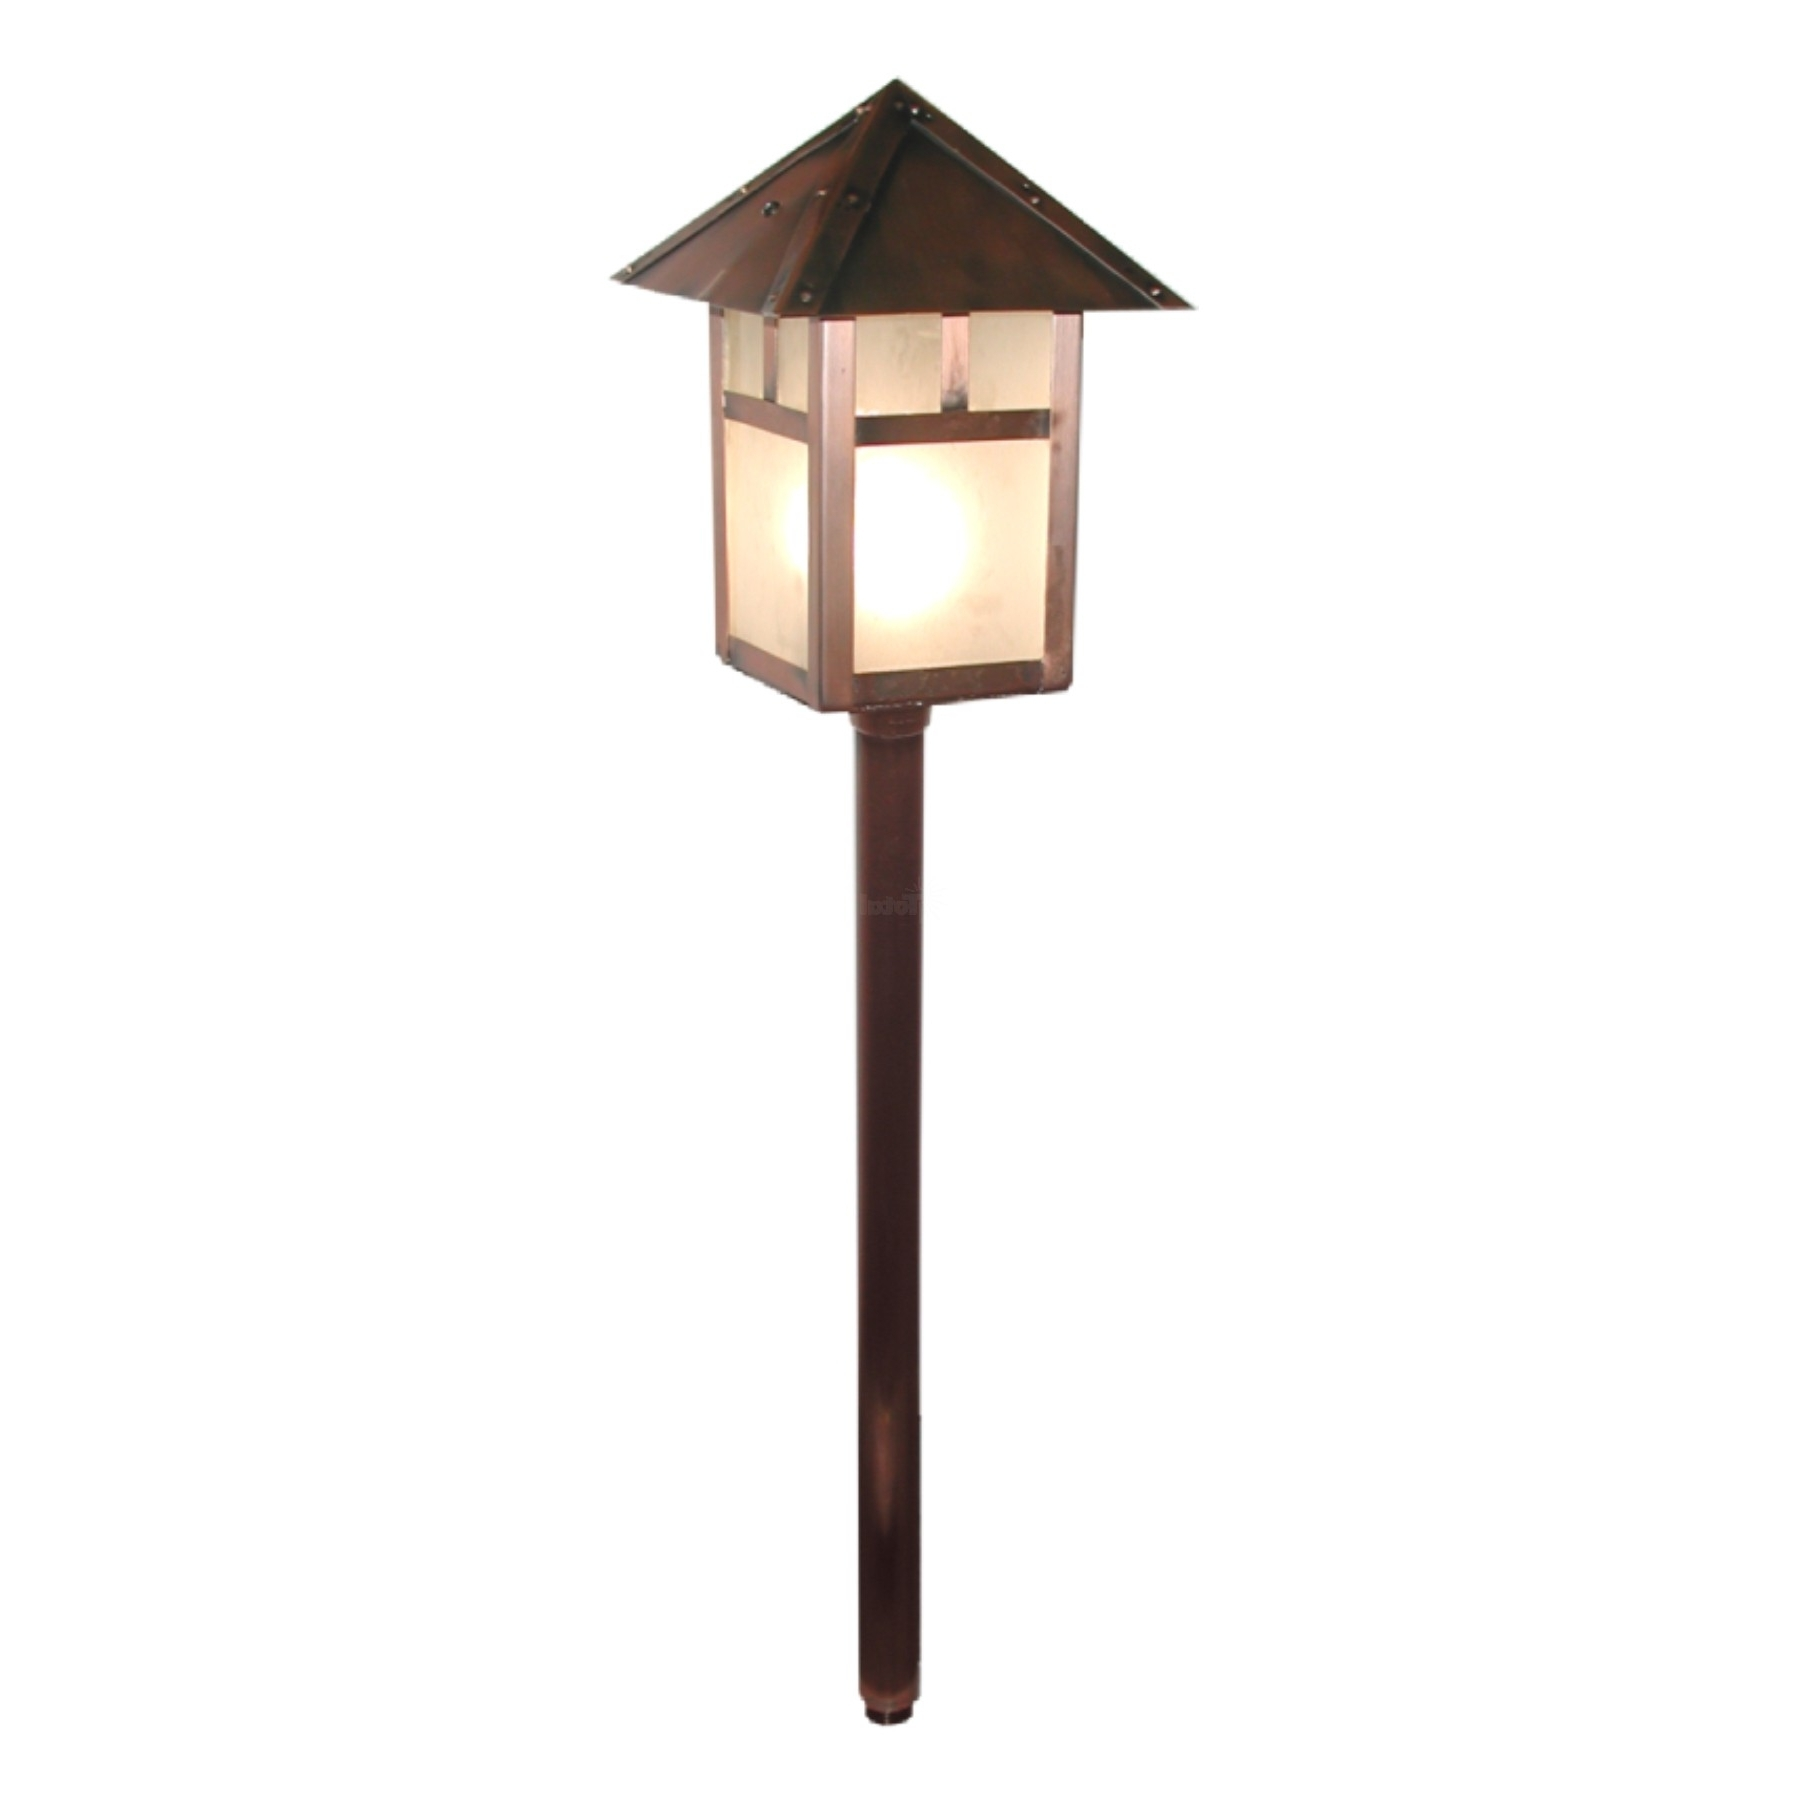 Outdoor Low Voltage Lanterns Intended For Well Known Landscape Lighting Low Voltage Lantern Path Light, Low Voltage (View 12 of 20)